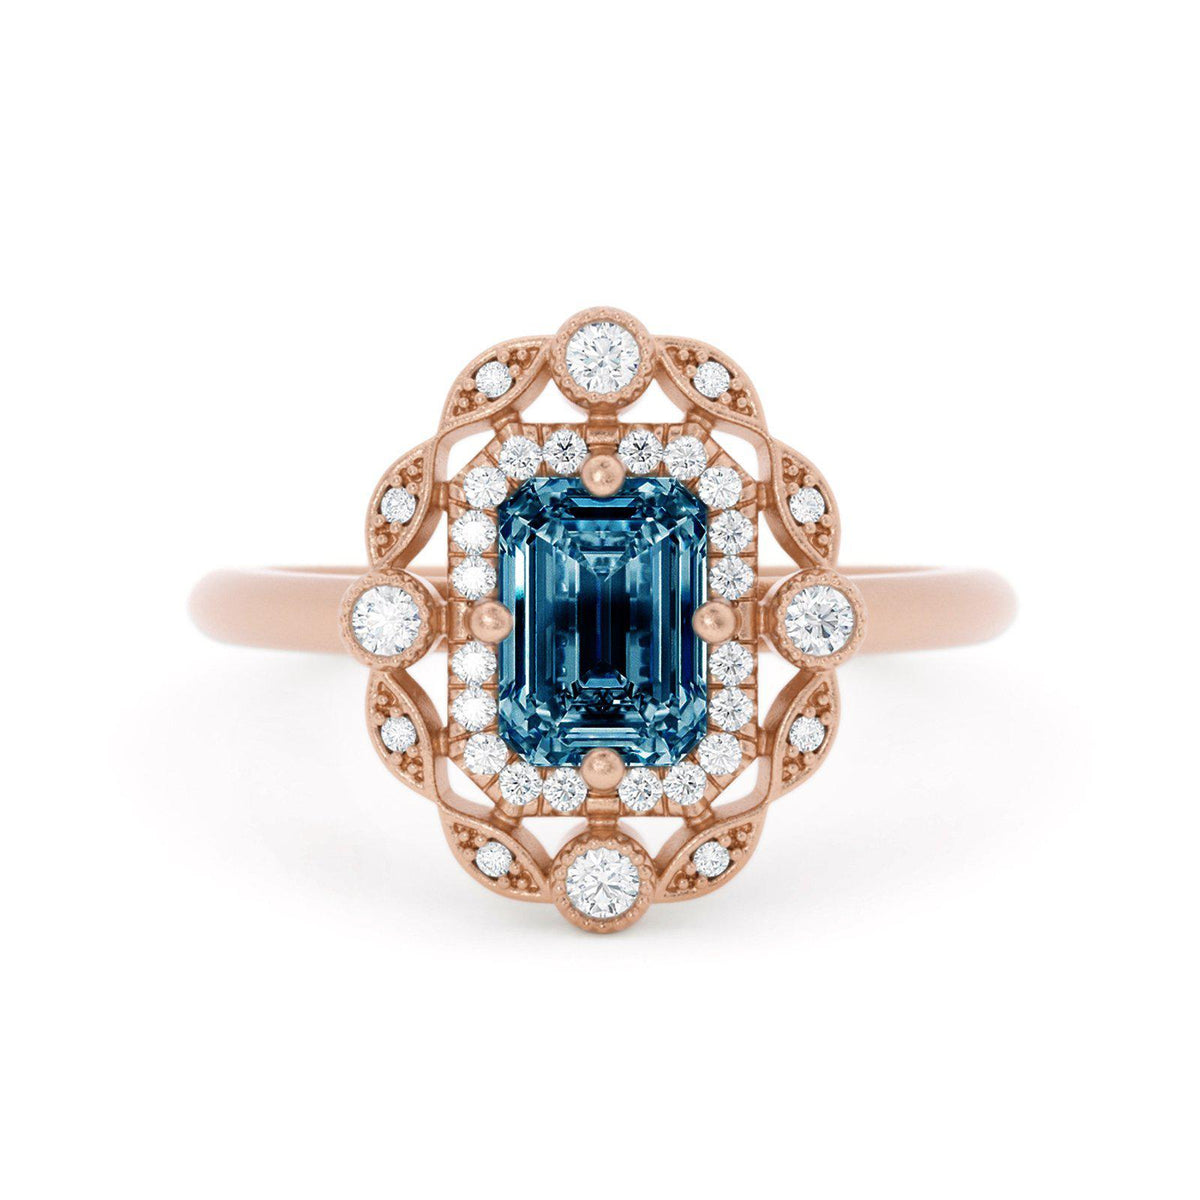 Mavis Montana Sapphire Ring with Double Halo Rose Gold